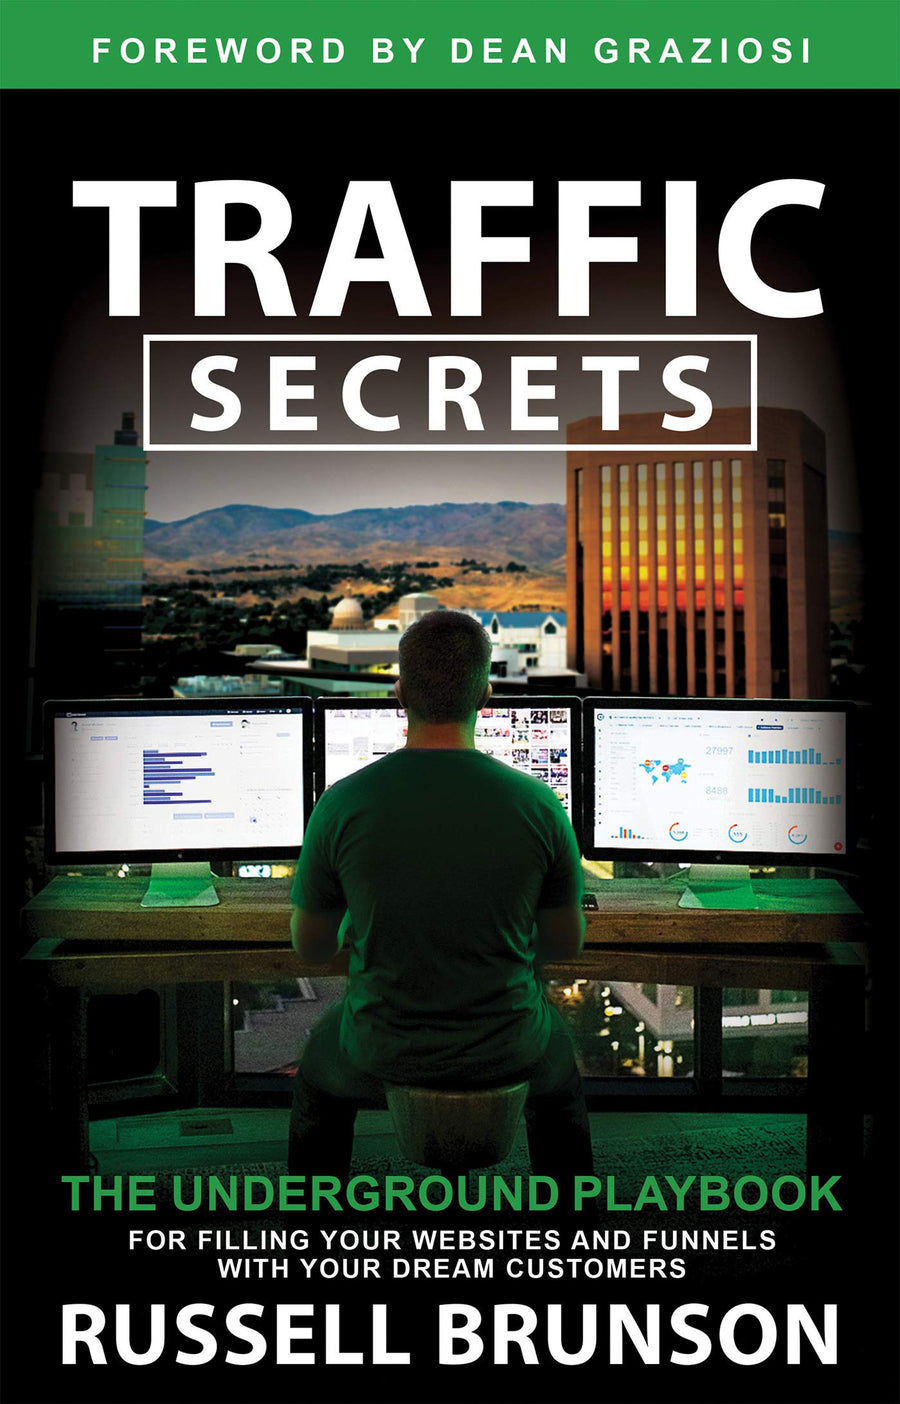 Traffic Secrets: The Underground Playbook for Filling Your Websites and Funnels with Your Dream Customers - Leadership Books